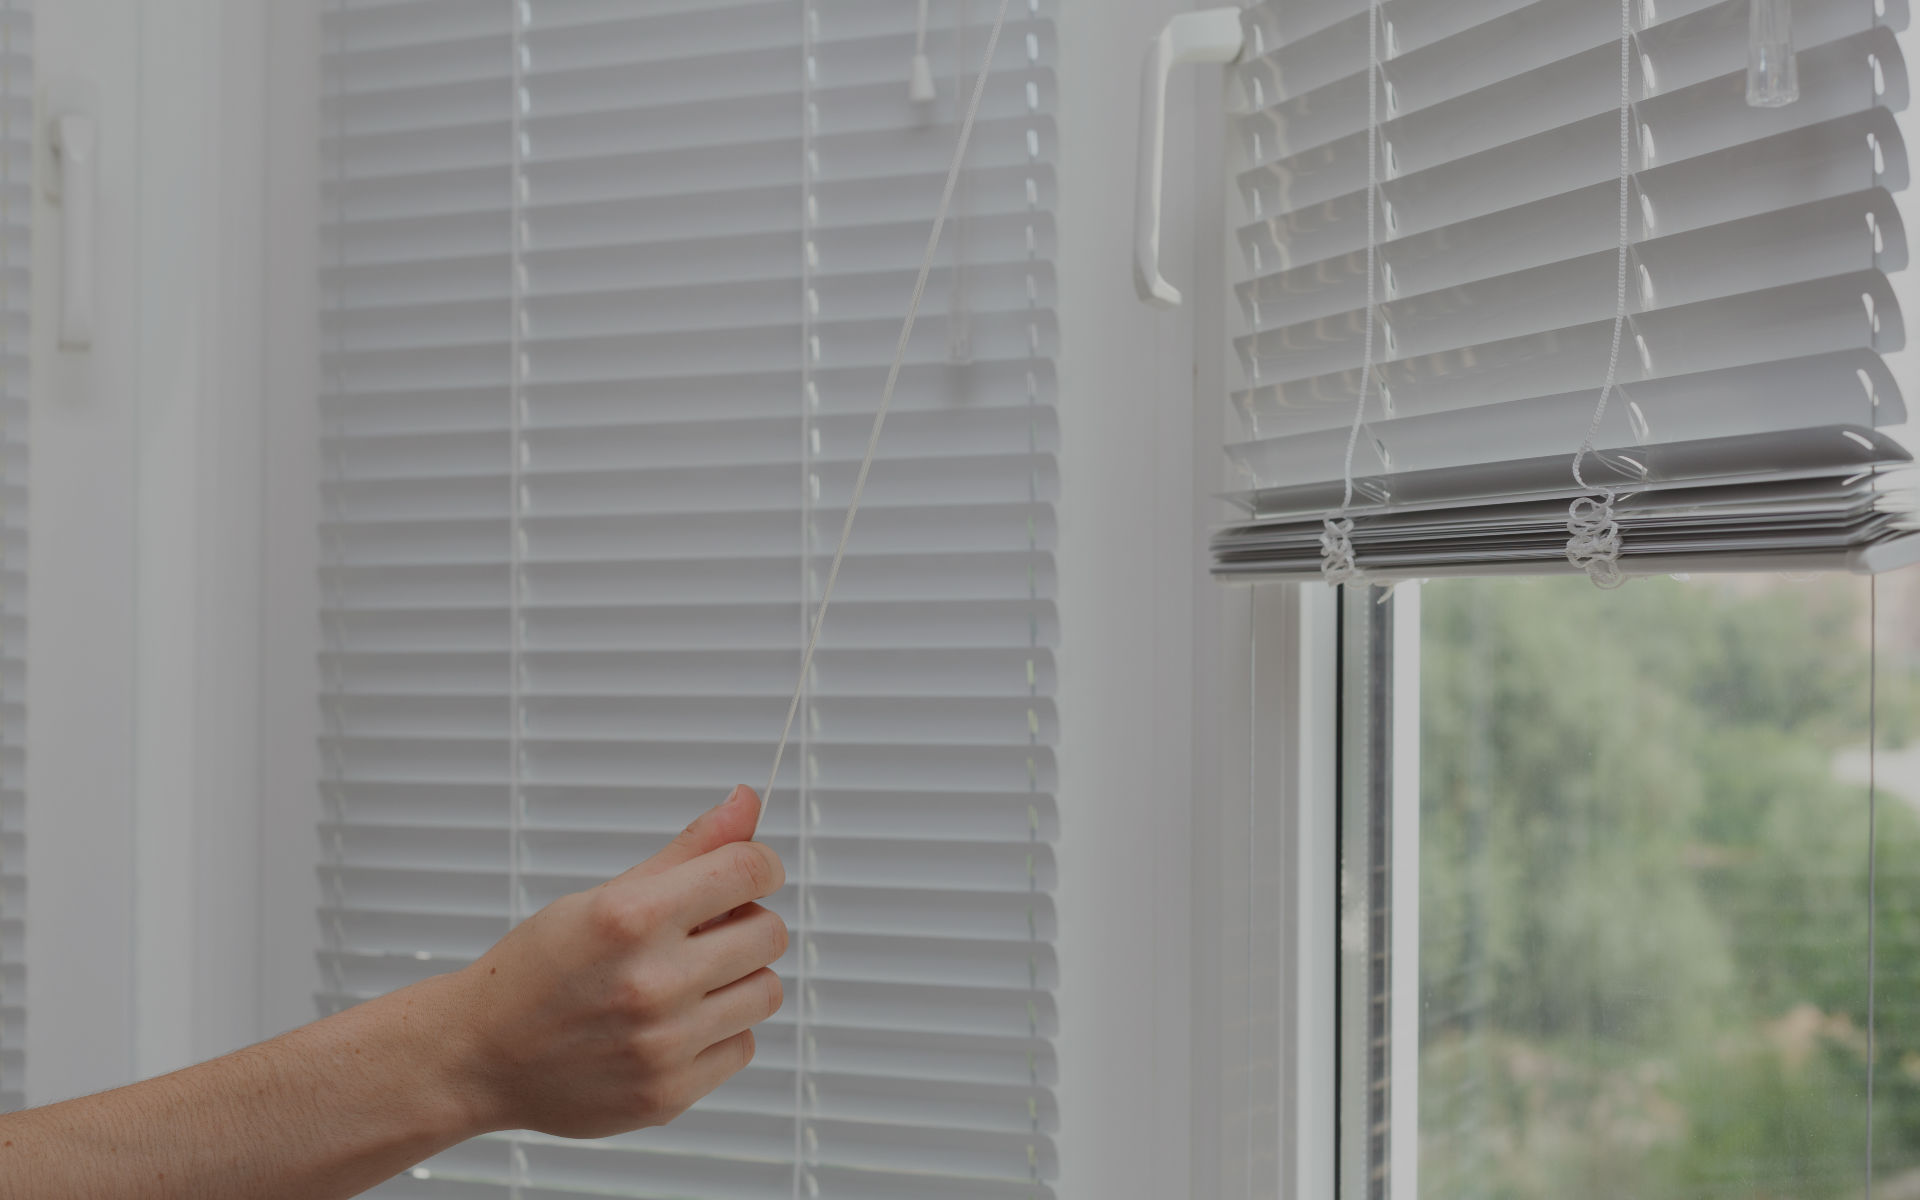 kit gocontrol ideas tulsawindow repair size info of kitswindow vertical venetian kirklandvertical blinds full and awesome boise charming blind window service windows